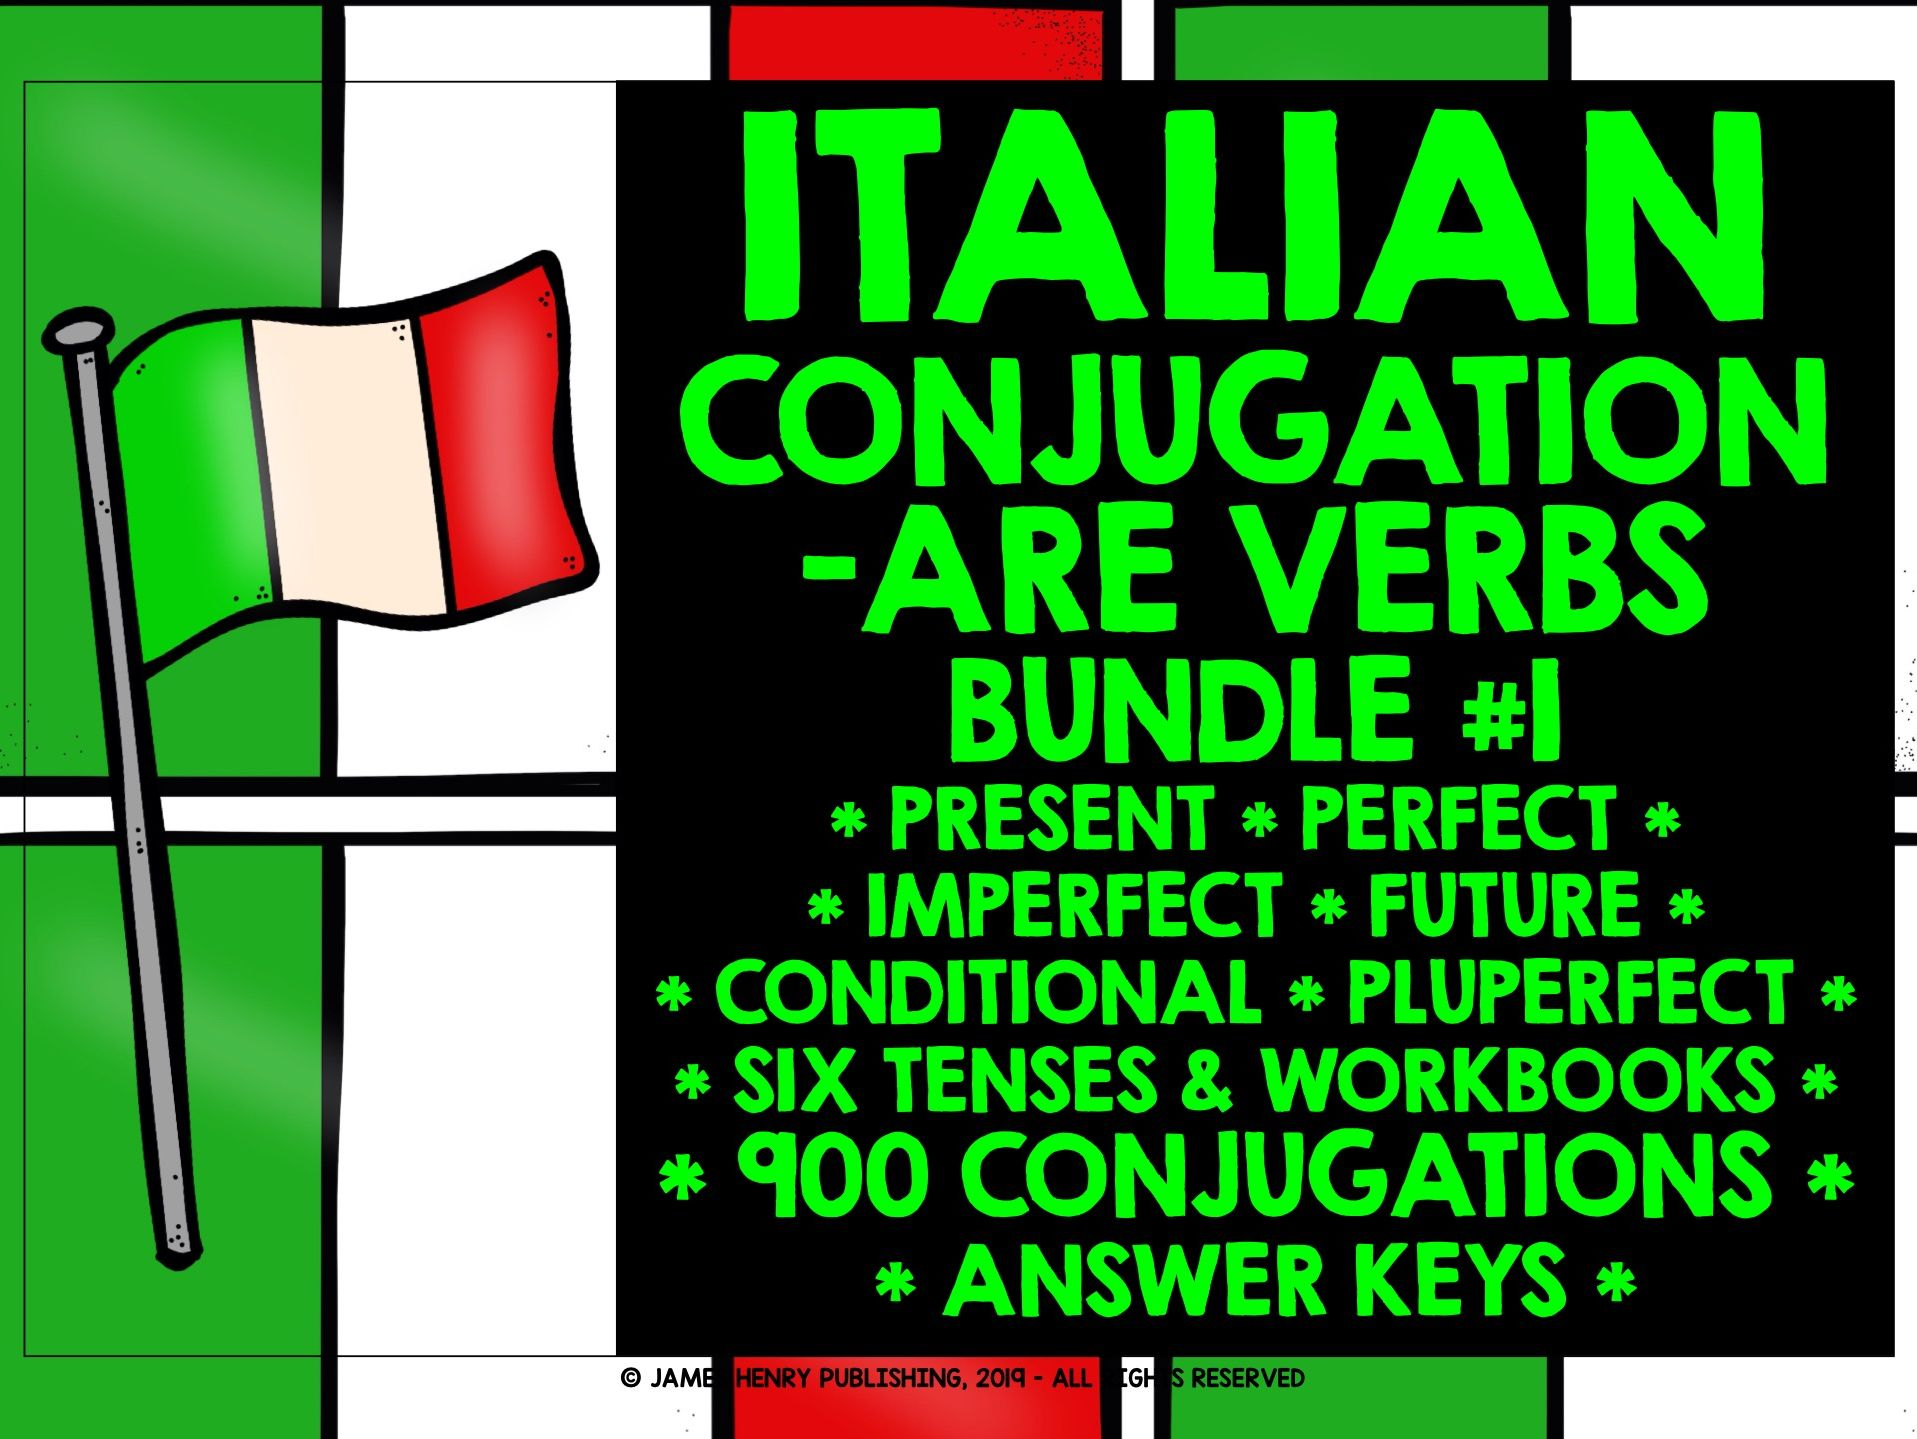 ITALIAN -ARE VERBS CONJUGATION BUNDLE #1